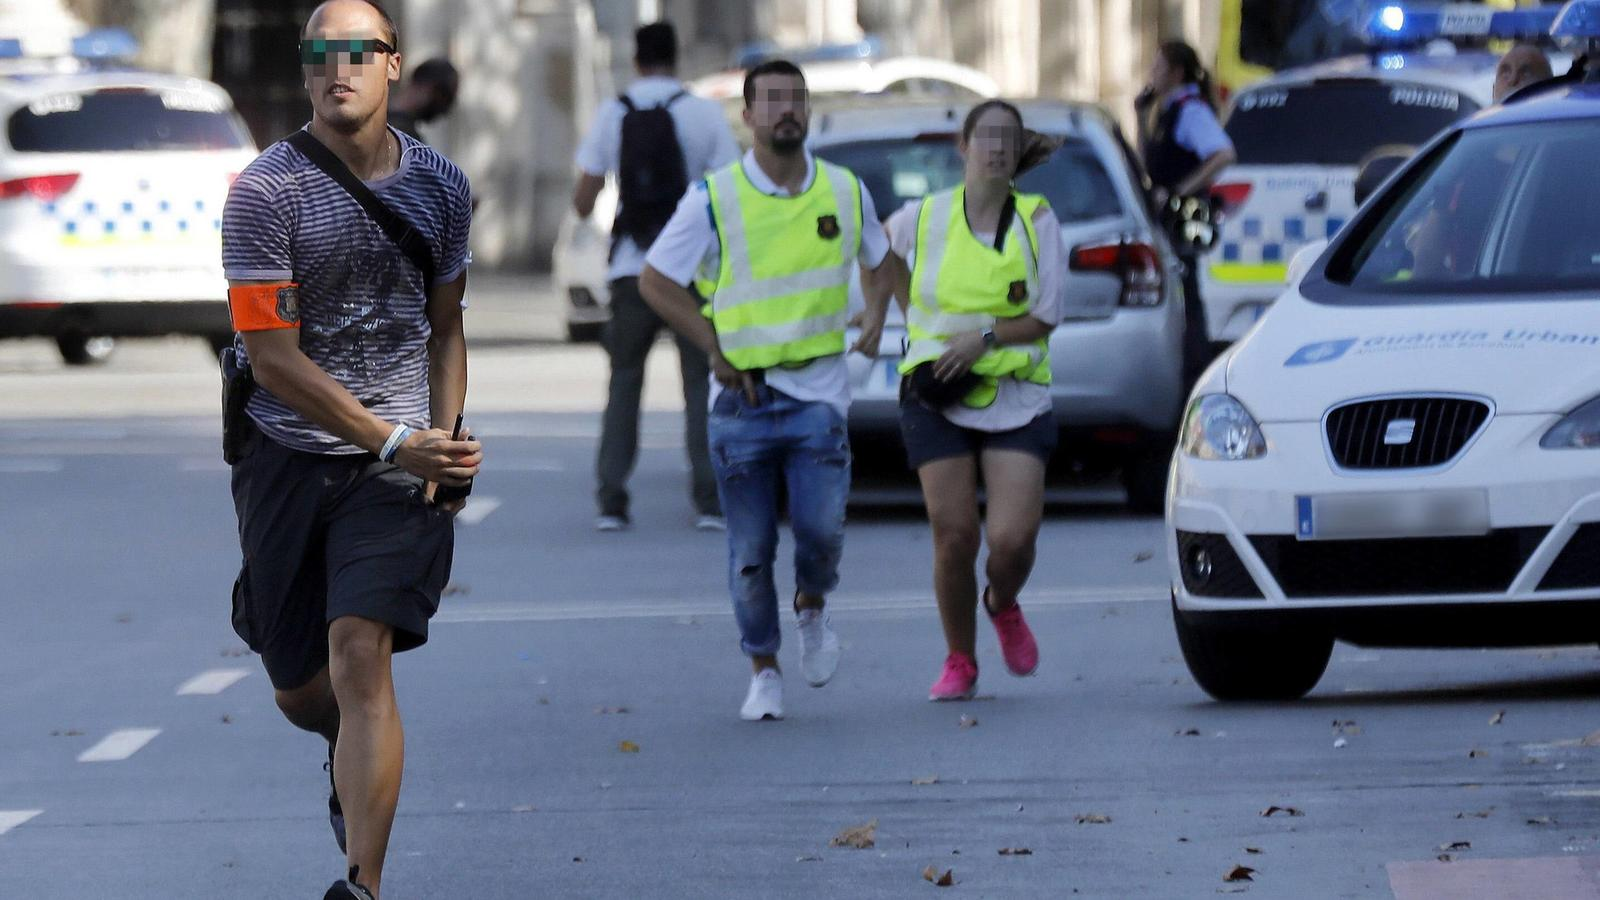 Mossos d Esquadra Police officers and emergency service workers set up a security perimeter near the site where a van crashes into pedestrians in Las Ramblas, downtown Barcelona, northeaster Spain, 17 August 2017. The number of people injured and the